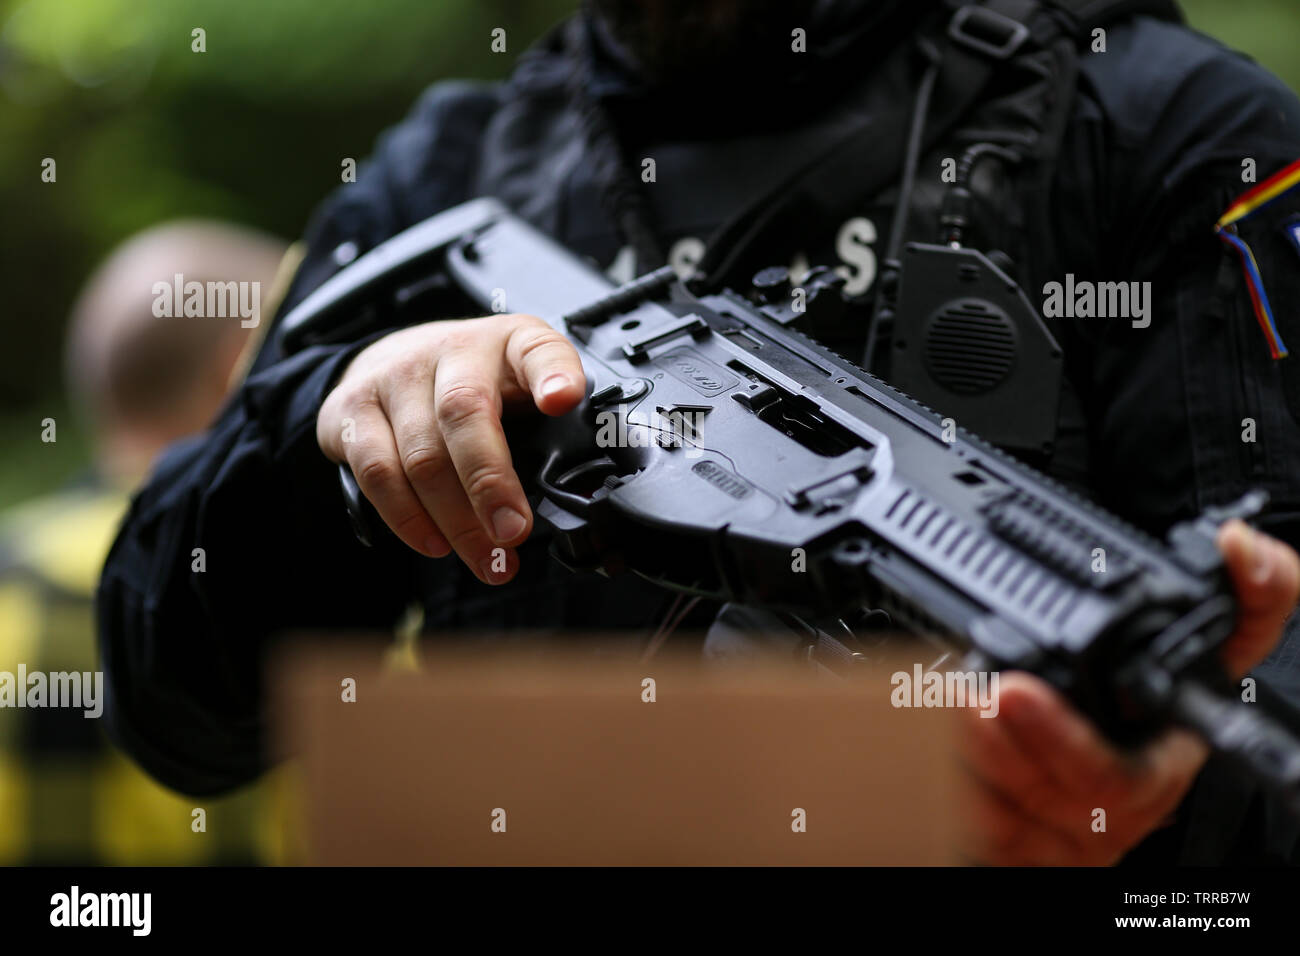 Bucharest, Romania - June 10, 2019: Details of a Romanian SIAS (the service for special action of the Romanian Police, equivalent of SWAT in the US) o - Stock Image